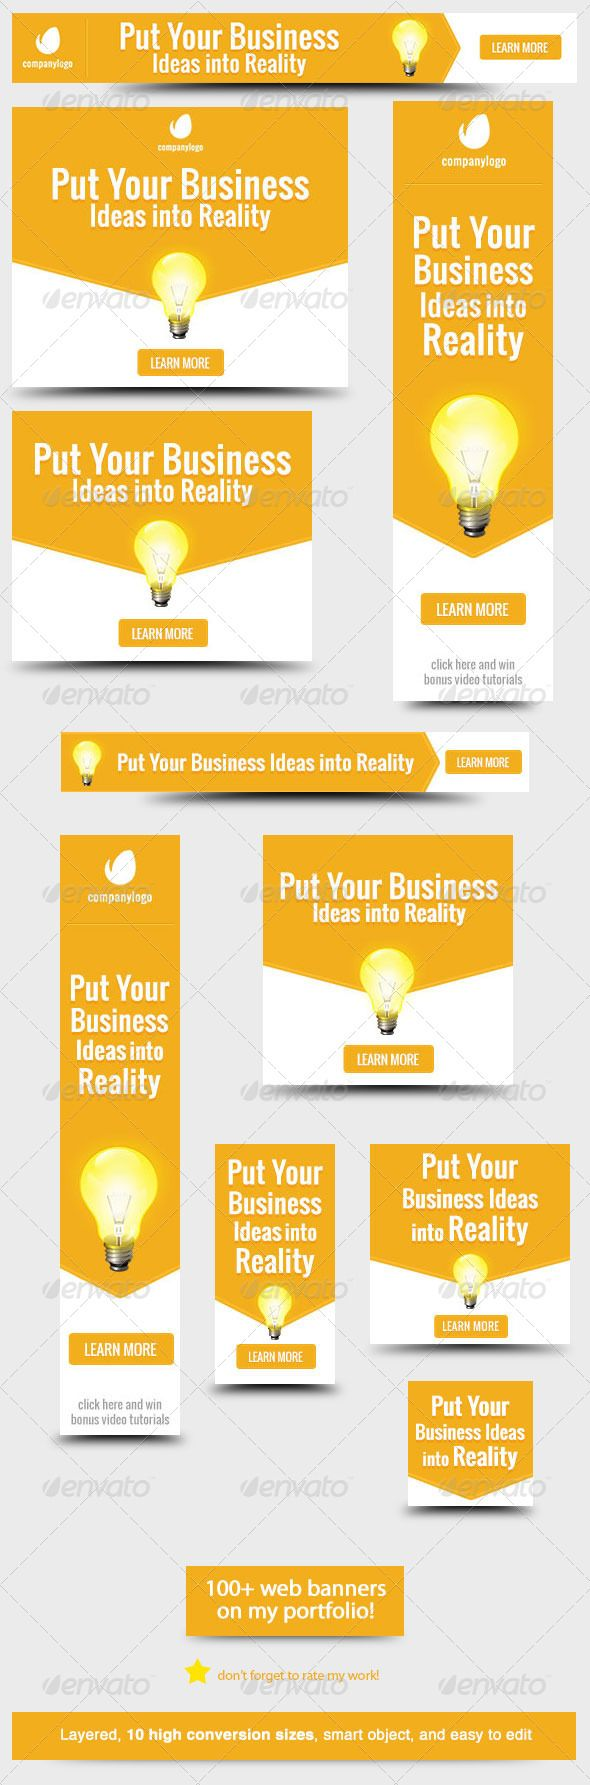 Design google banner ads - Business Idea Web Banner Design